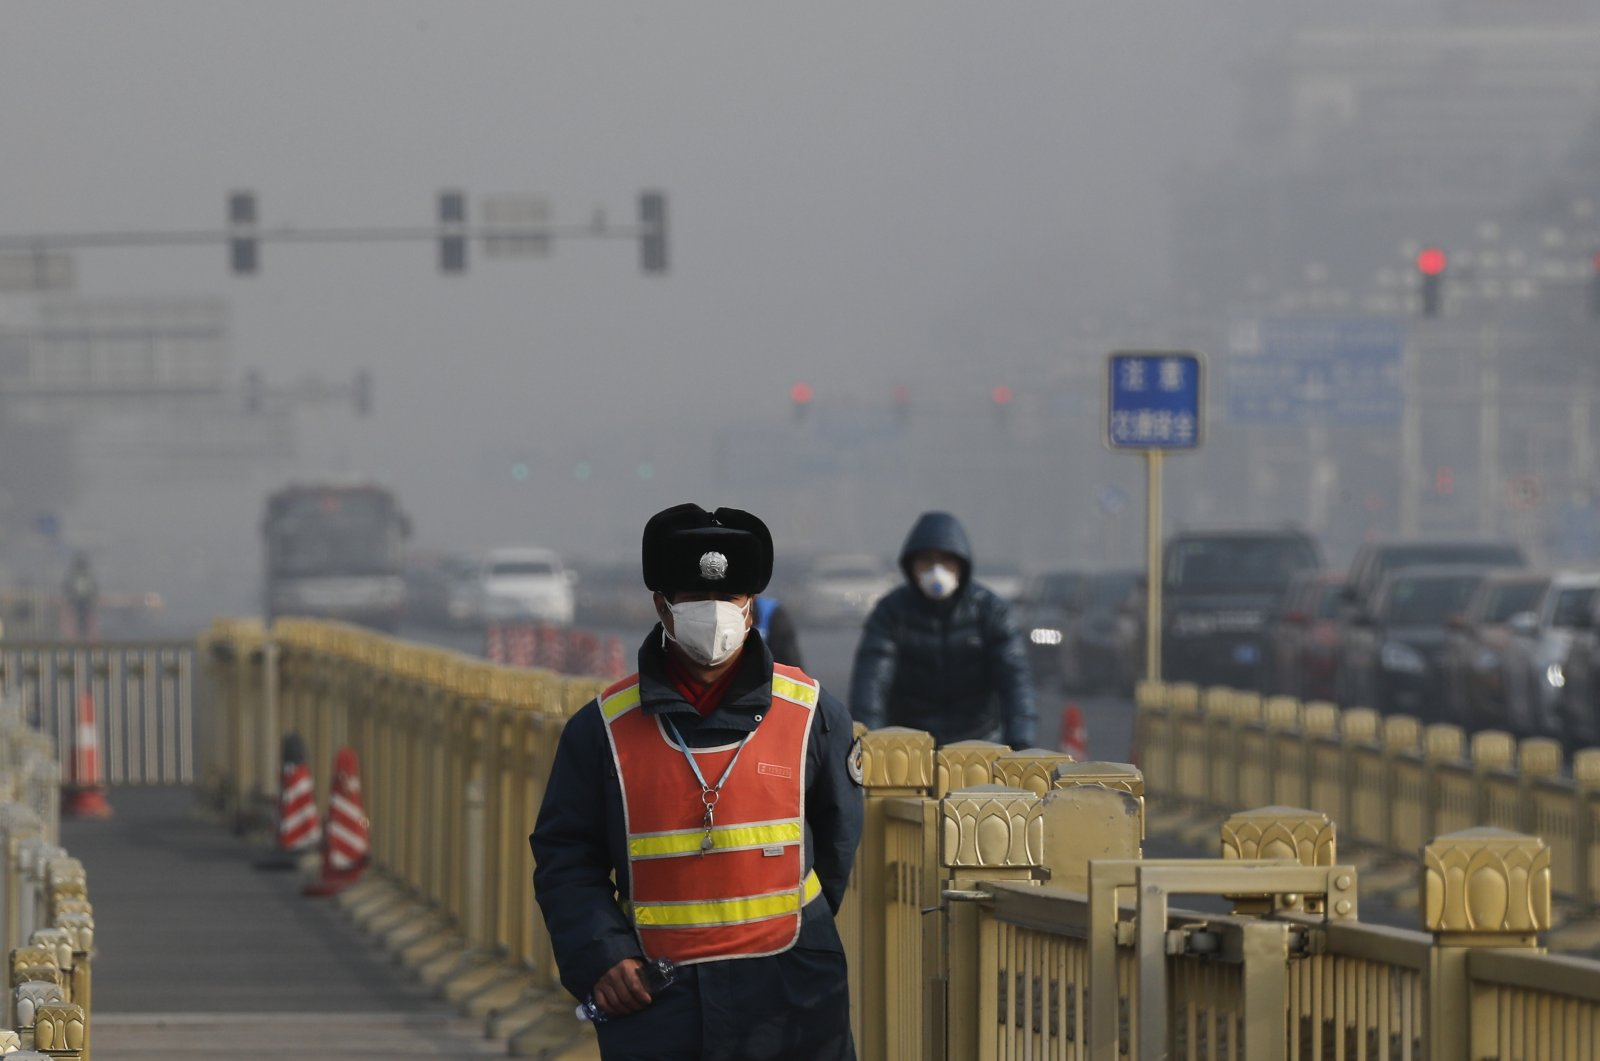 A traffic warden wearing a protection mask walks on a street near Tiananmen Square as the capital is blanketed by heavy smog, Beijing, China, Wednesday, Jan. 4, 2017. (AP Photo)